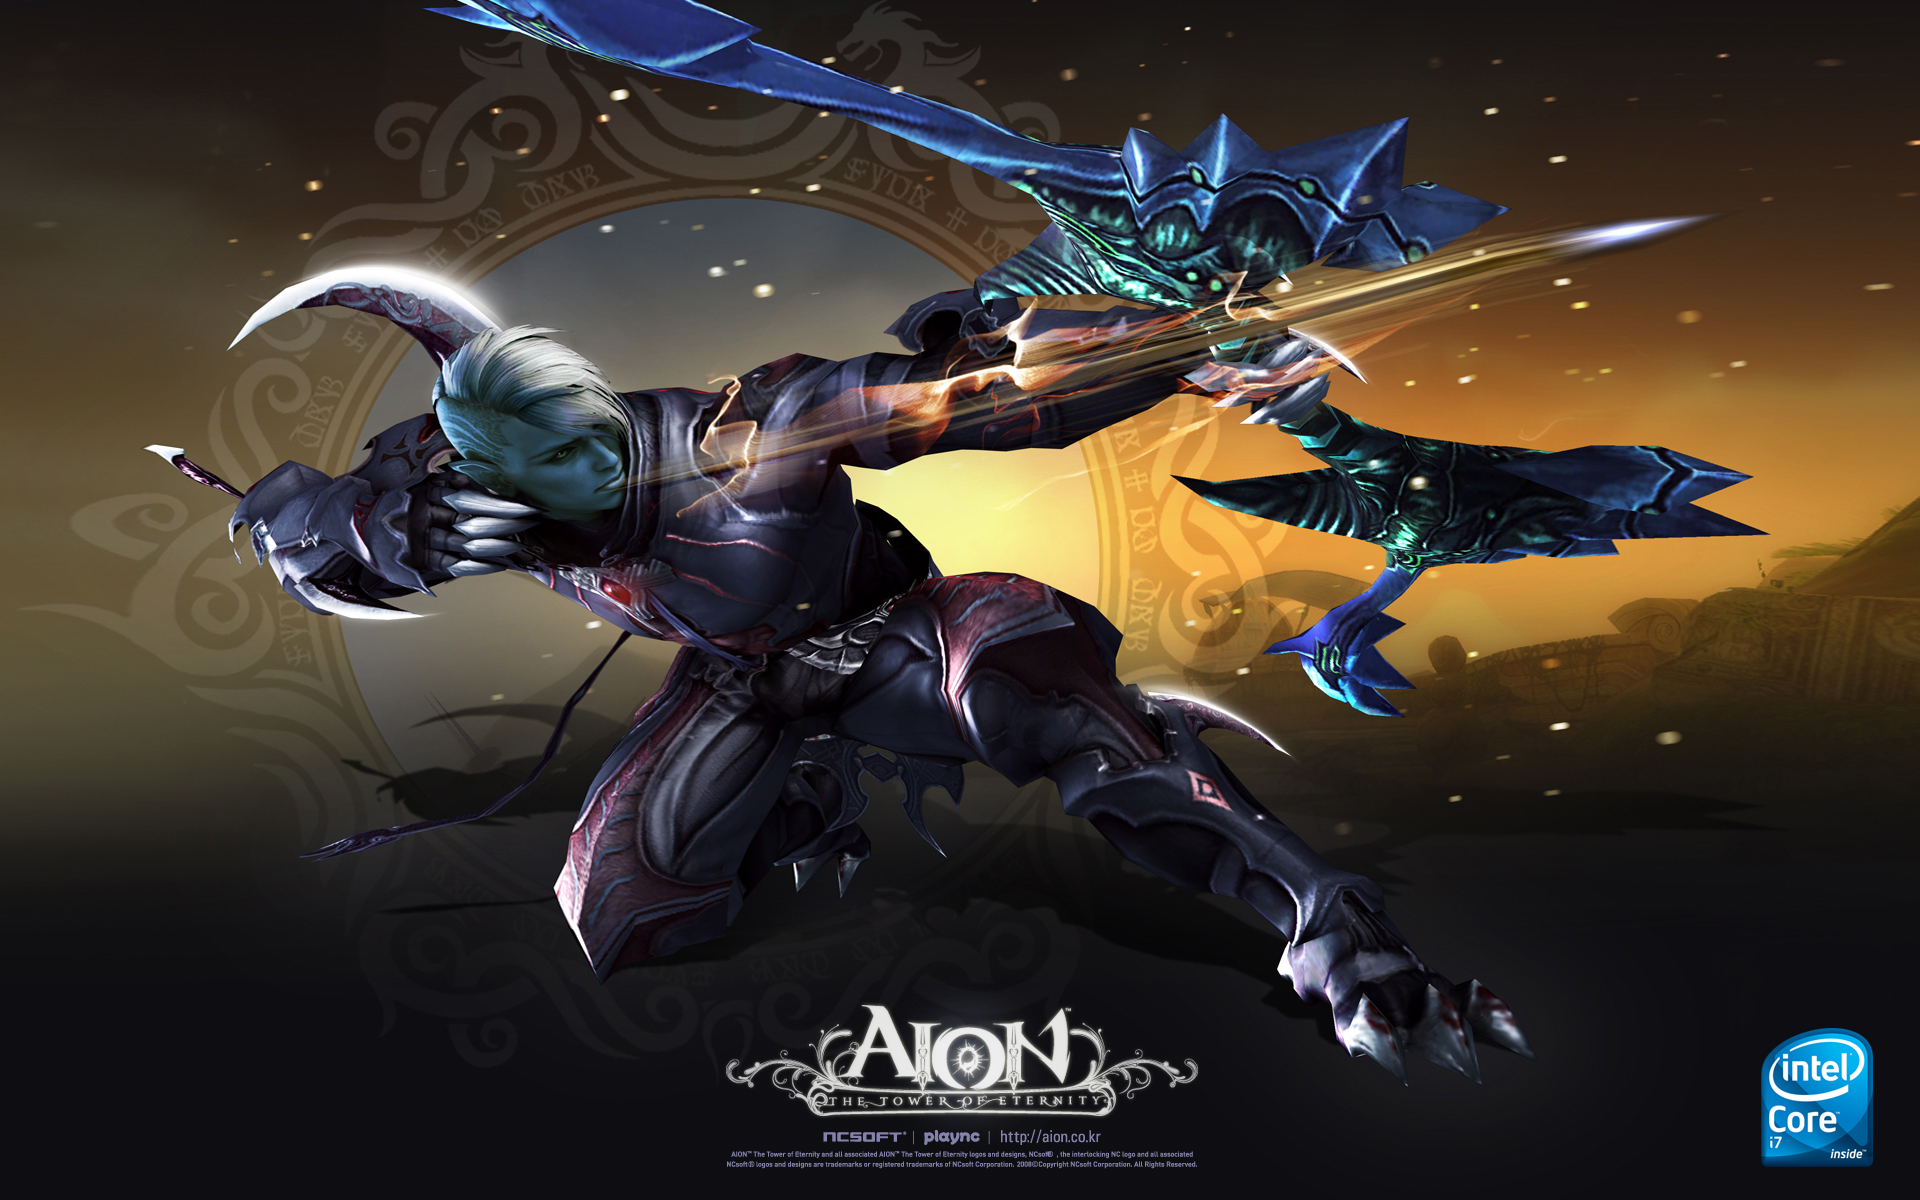 kumpulan wallpaper intel aion